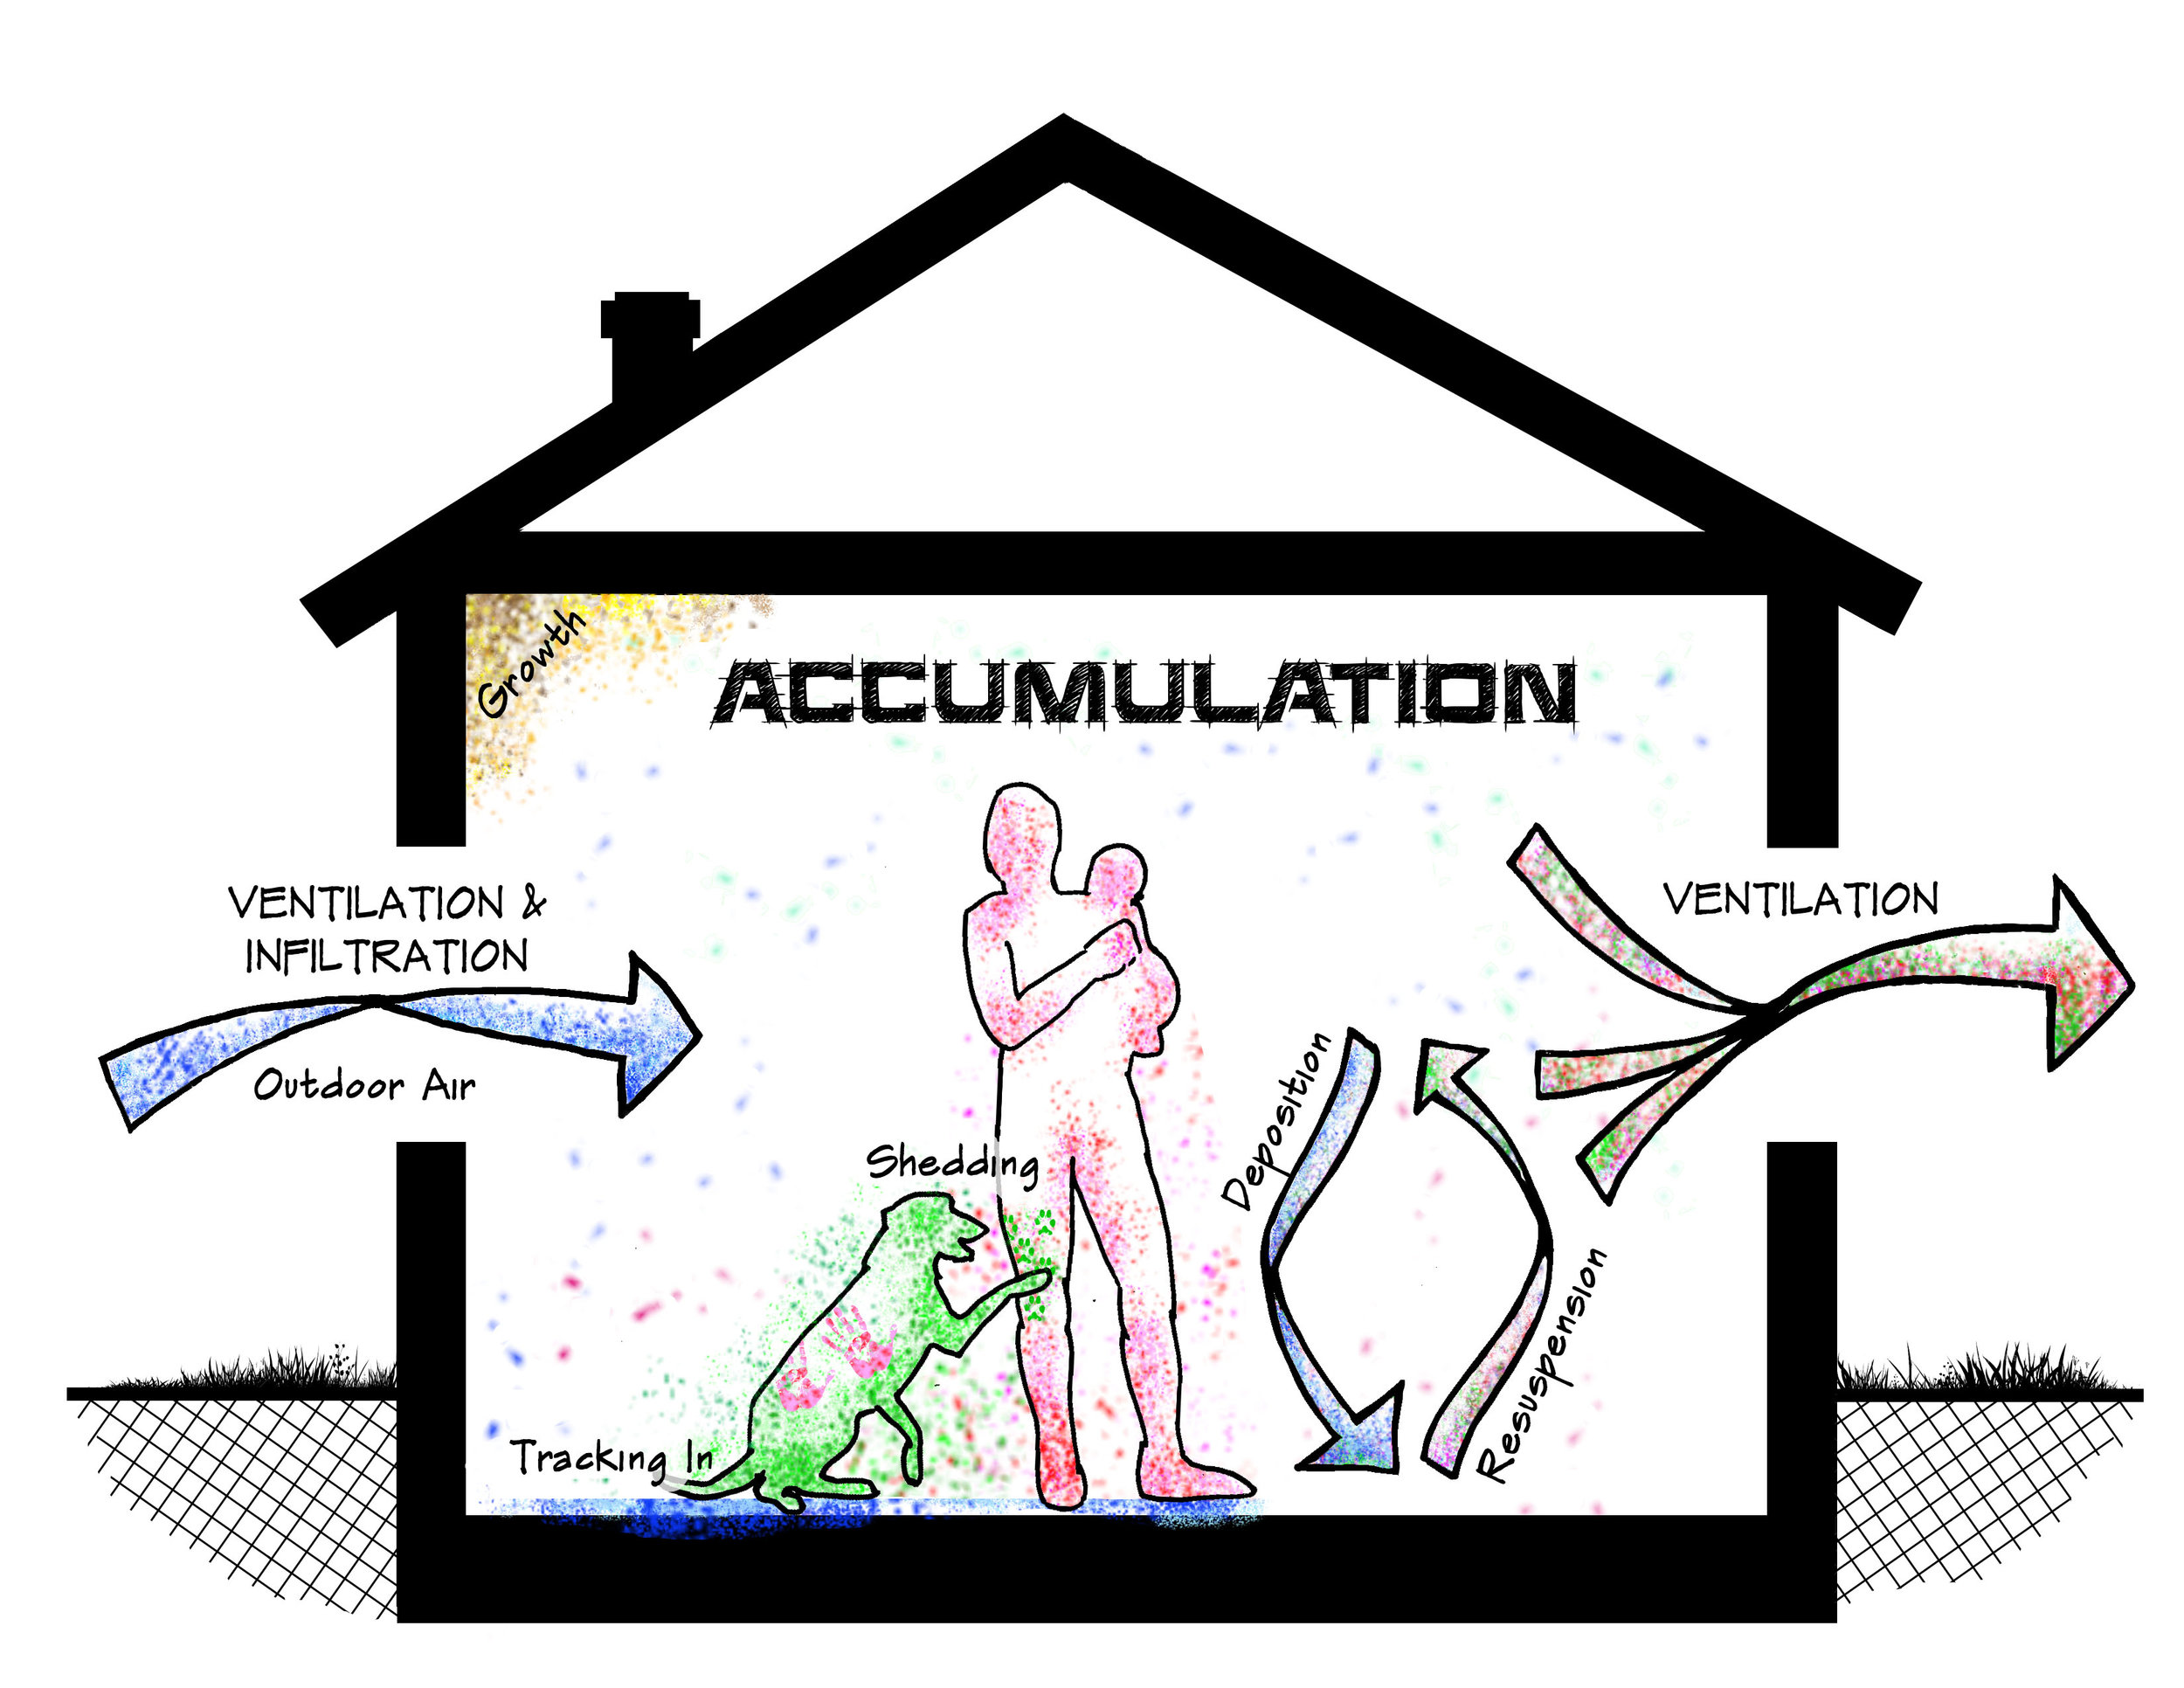 Sources and Physical Processes that Govern Assembly of Indoor Microbial Communities. Other potential sources of microbes may include emission from plants, food, and plumbing.